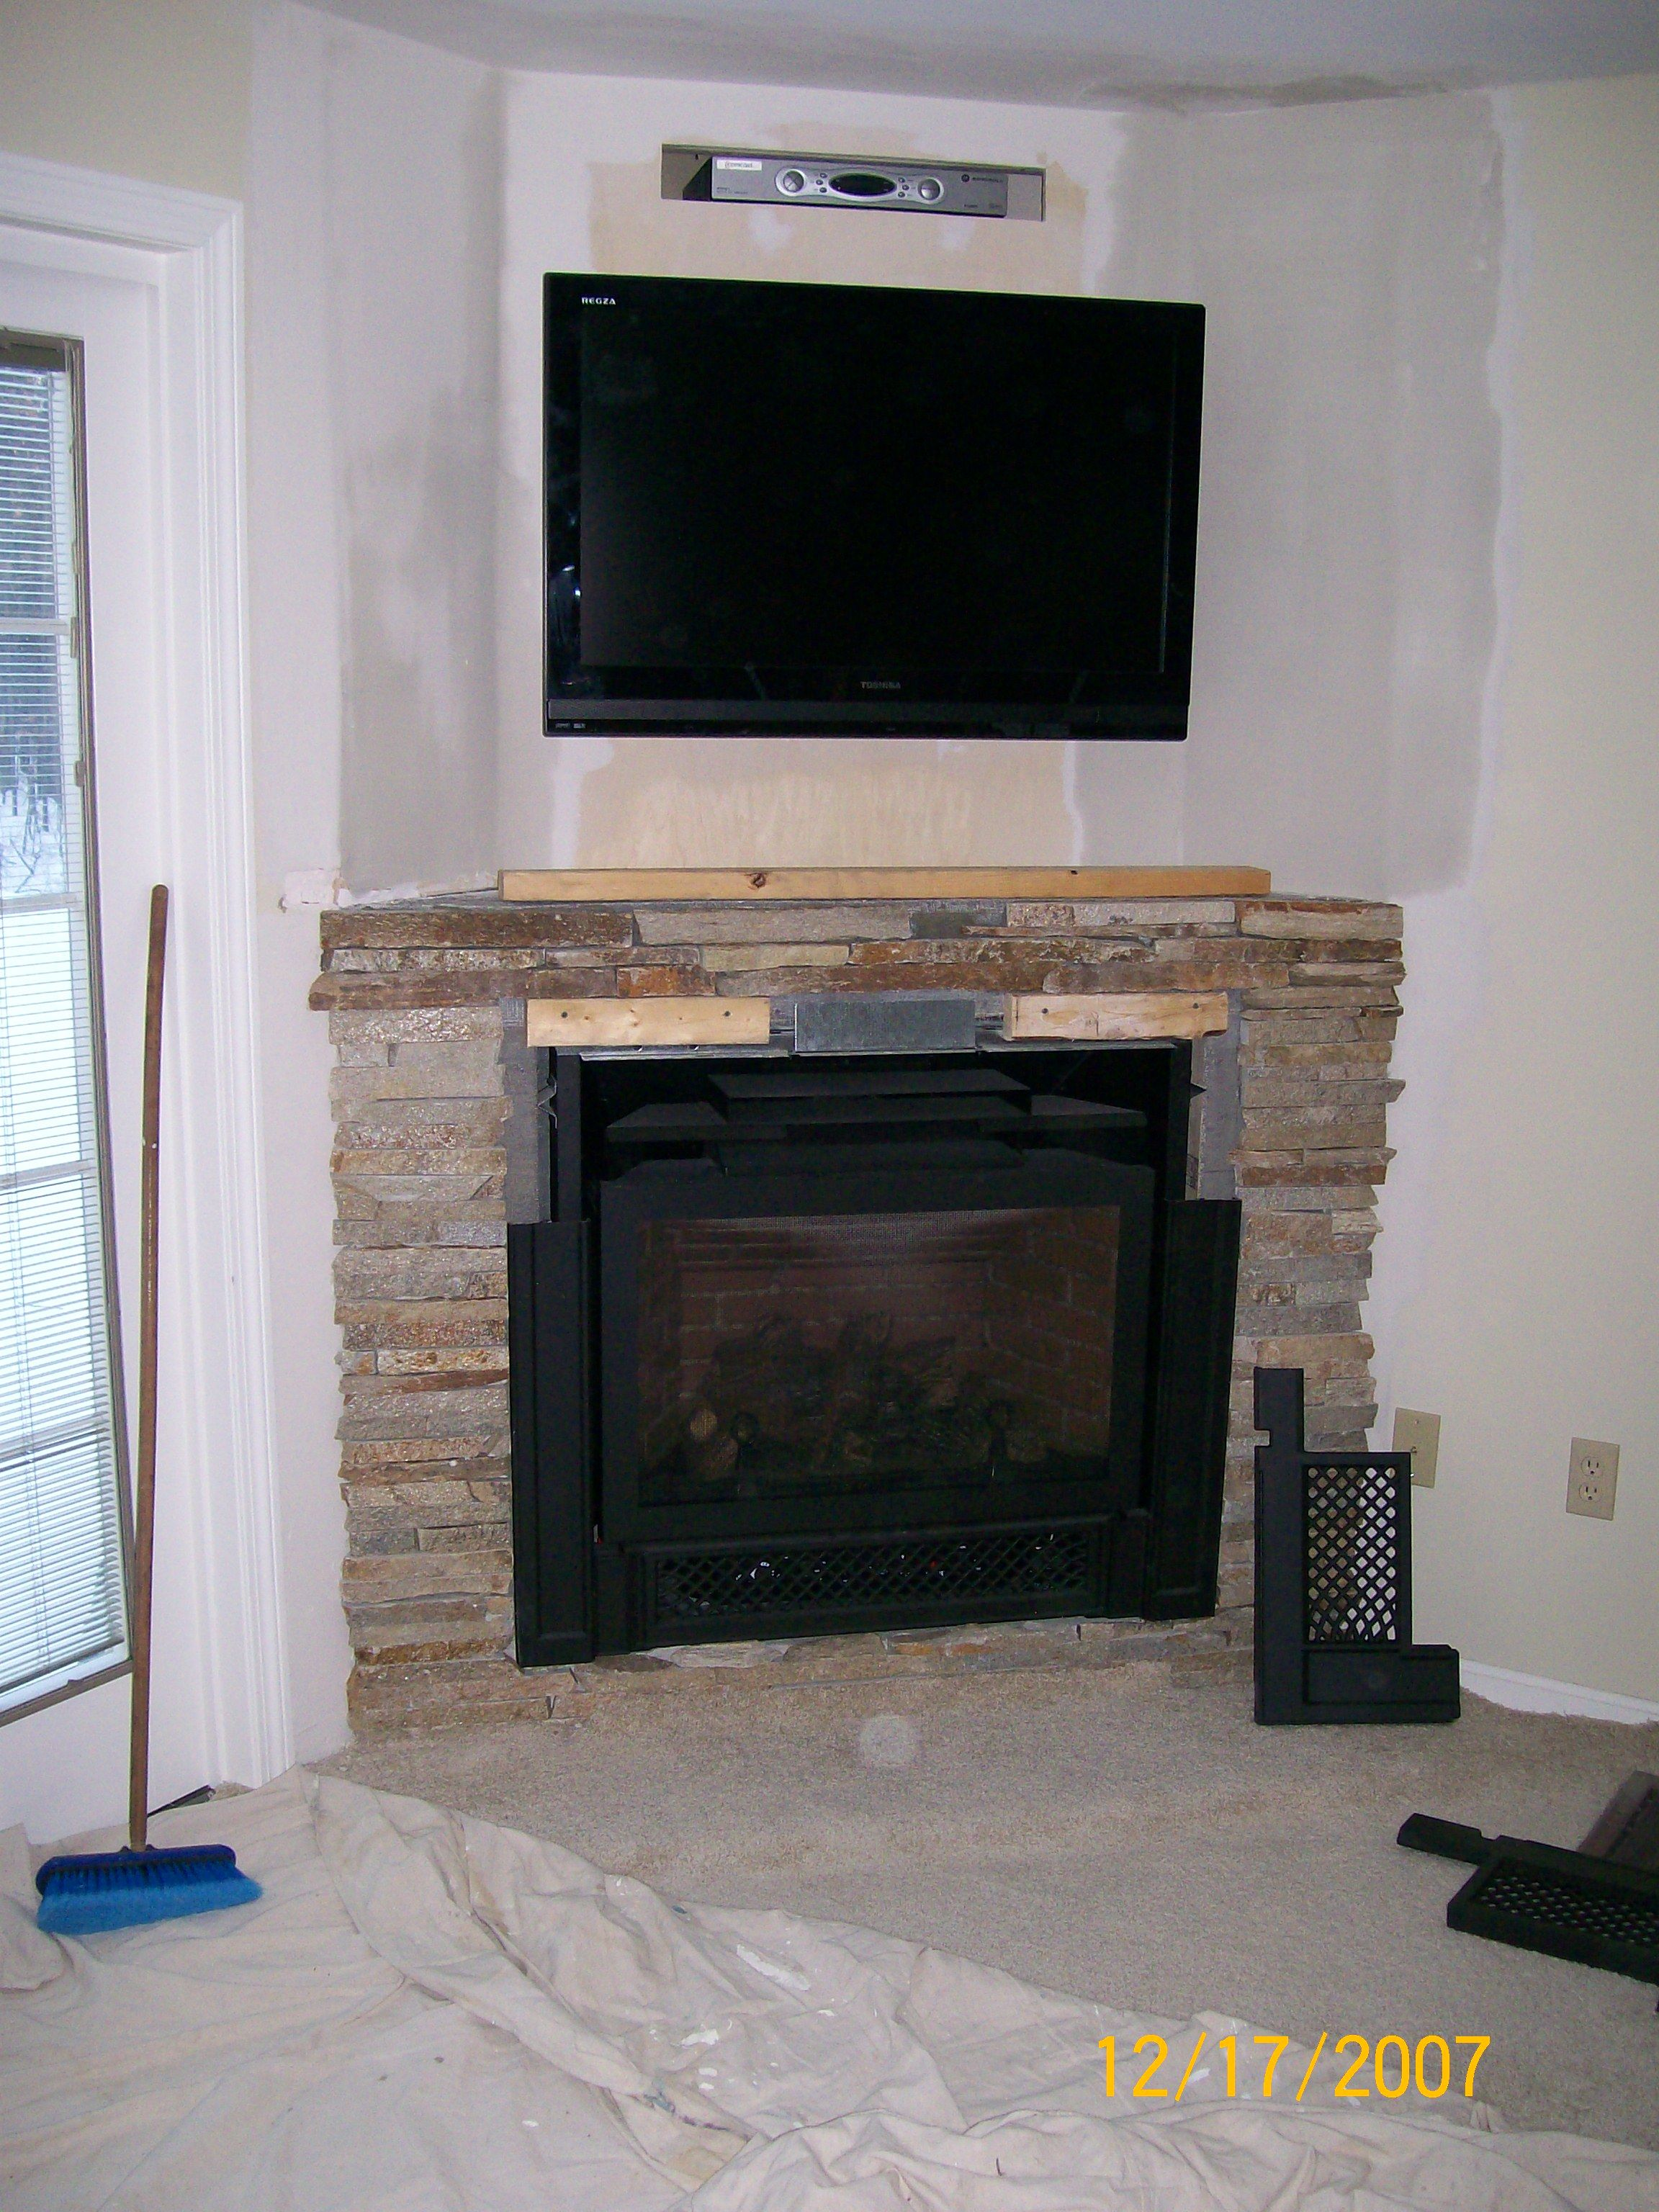 corner fireplaces and finally a gas fireplace in an unused corner with a flat screen